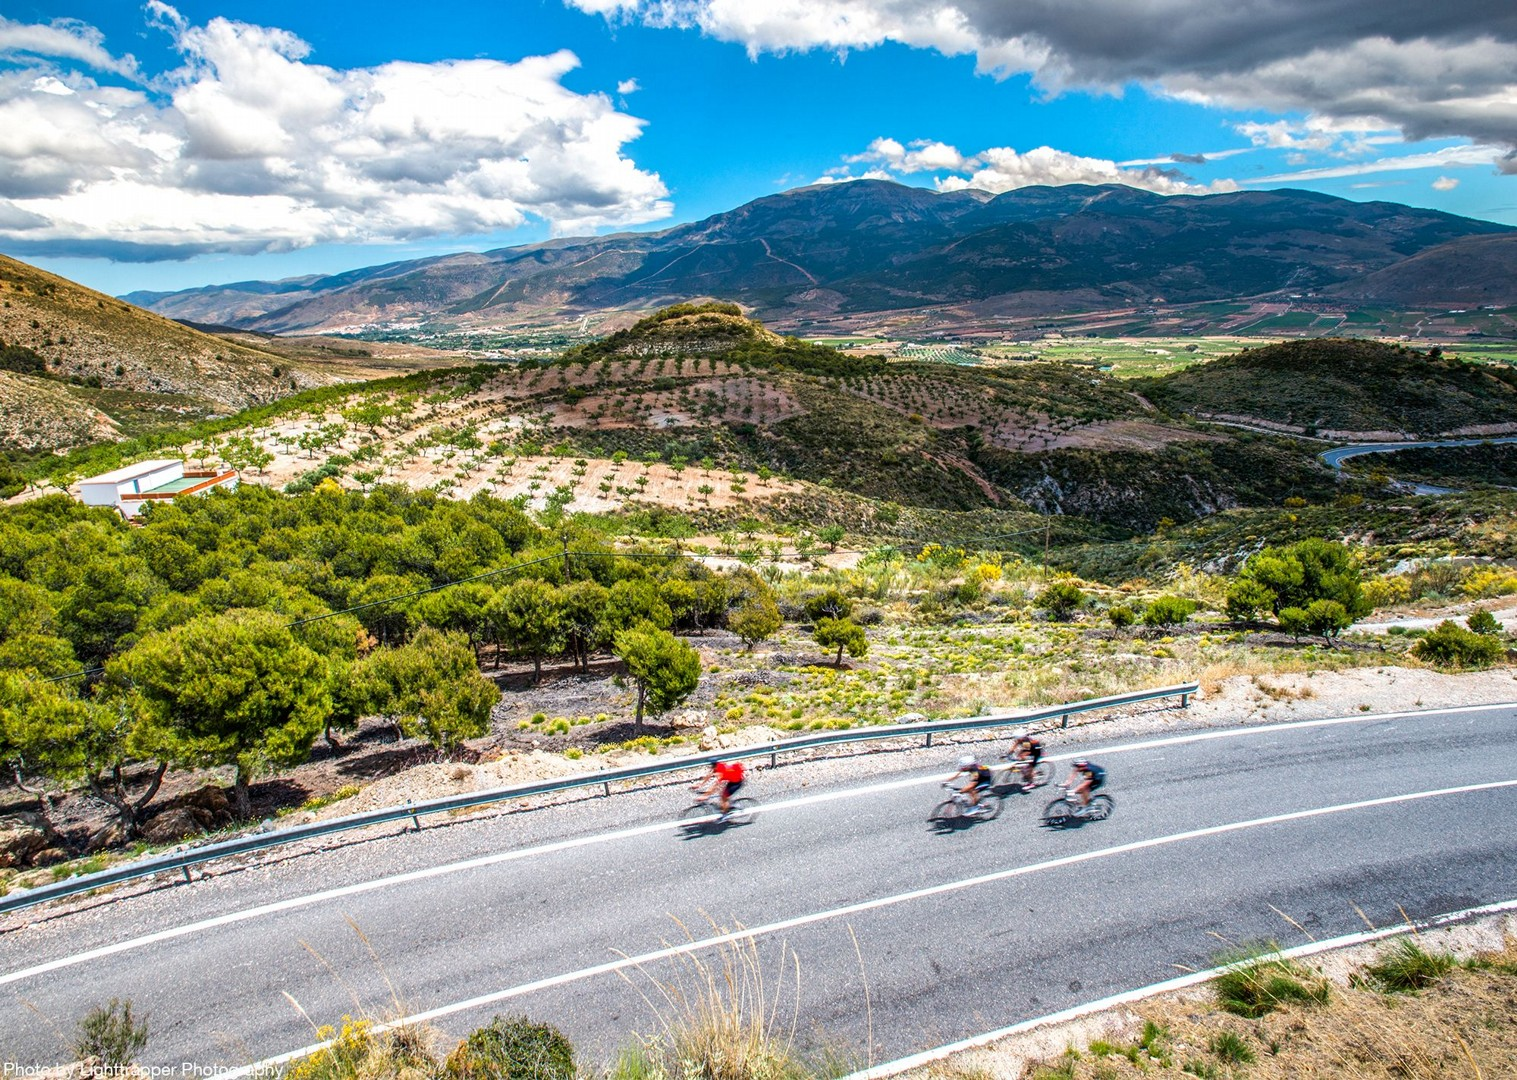 north-to-south-basque-country-to-andalucia-road-cycling-holiday-guided.jpg - Spain - Basque Country to Andalucia - North to South (16 Days) - Guided Road Cycling Holiday - Road Cycling